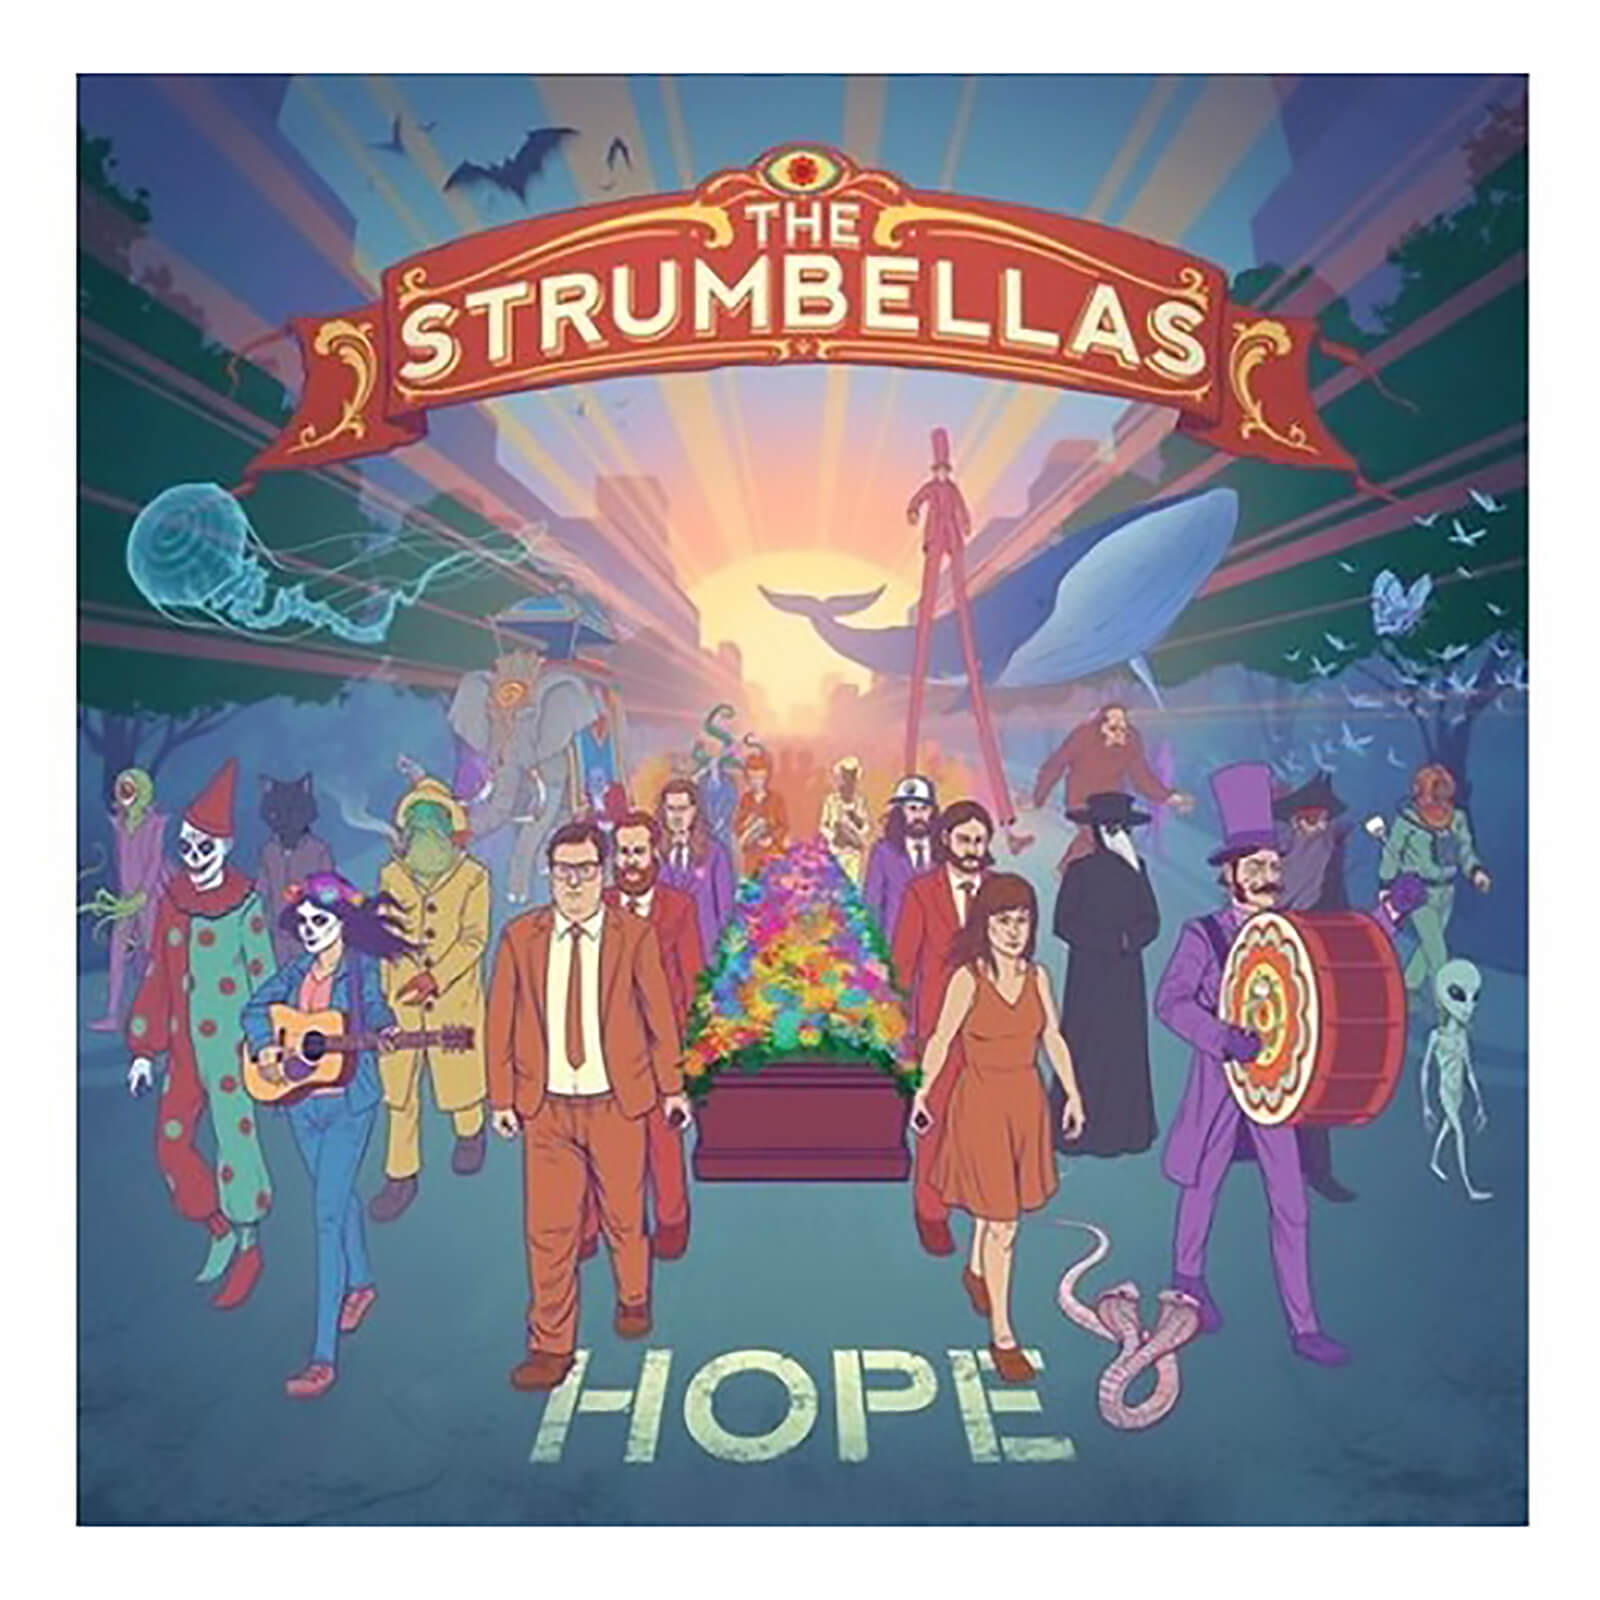 Strumbellas - Hope - Vinyl